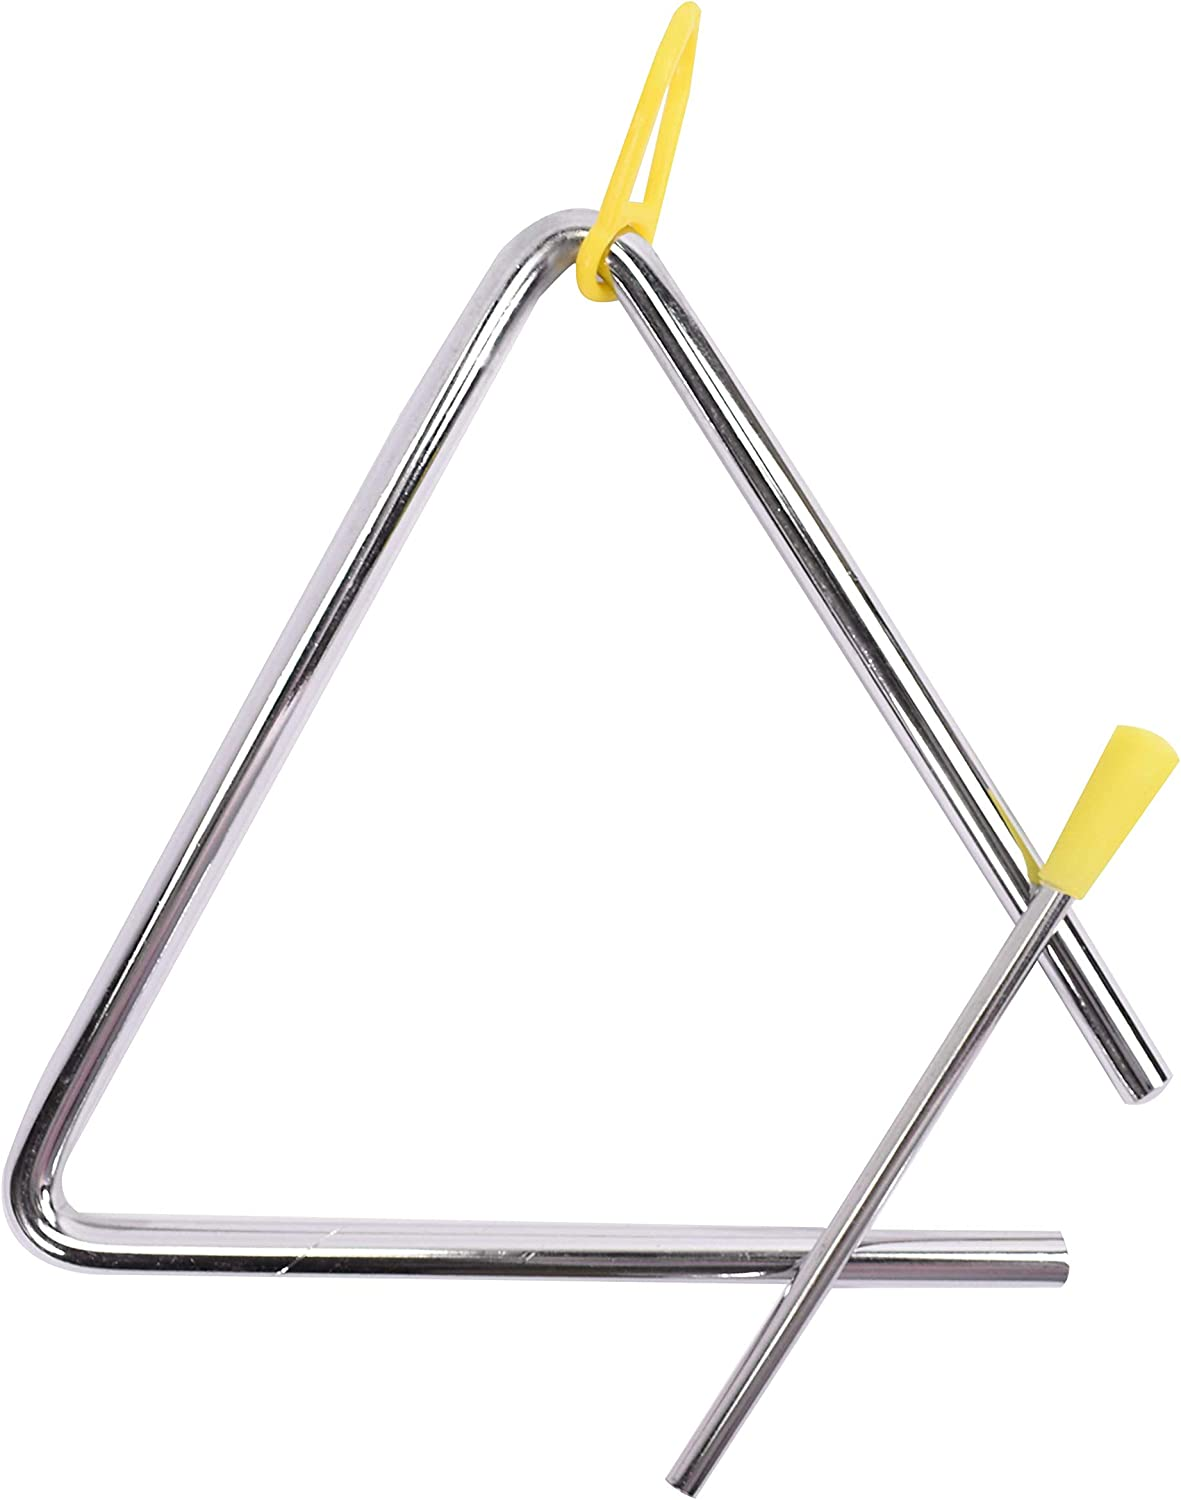 5inch Musical Triangle Steel School Children Percussion Instrument with Beater